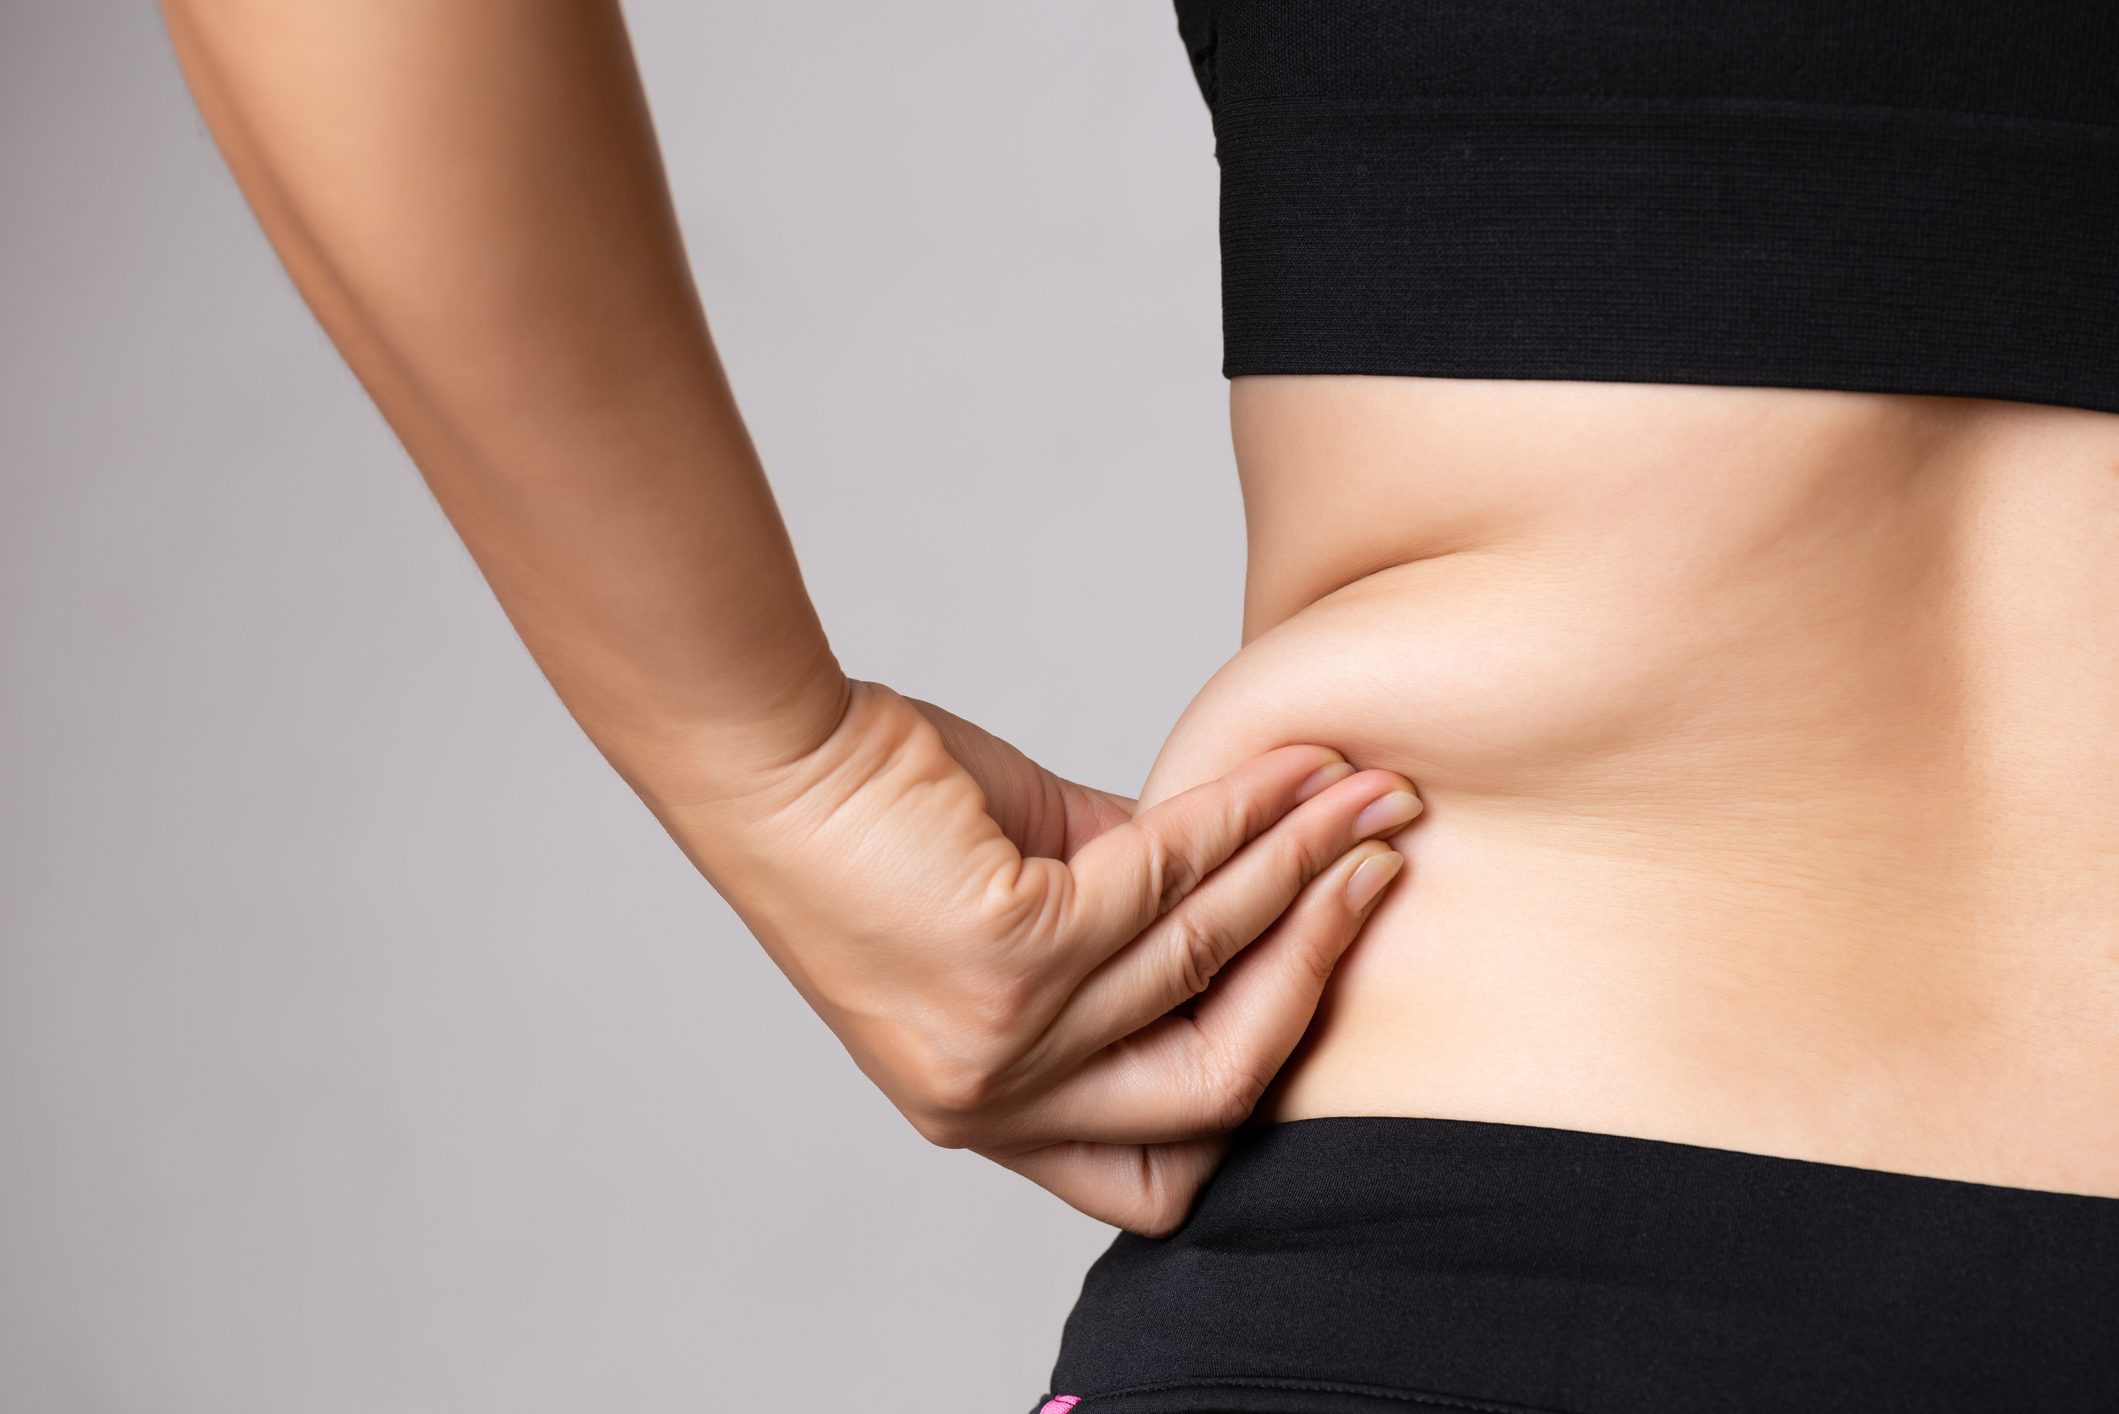 woman grabbing excess fat on side of her stomach and back